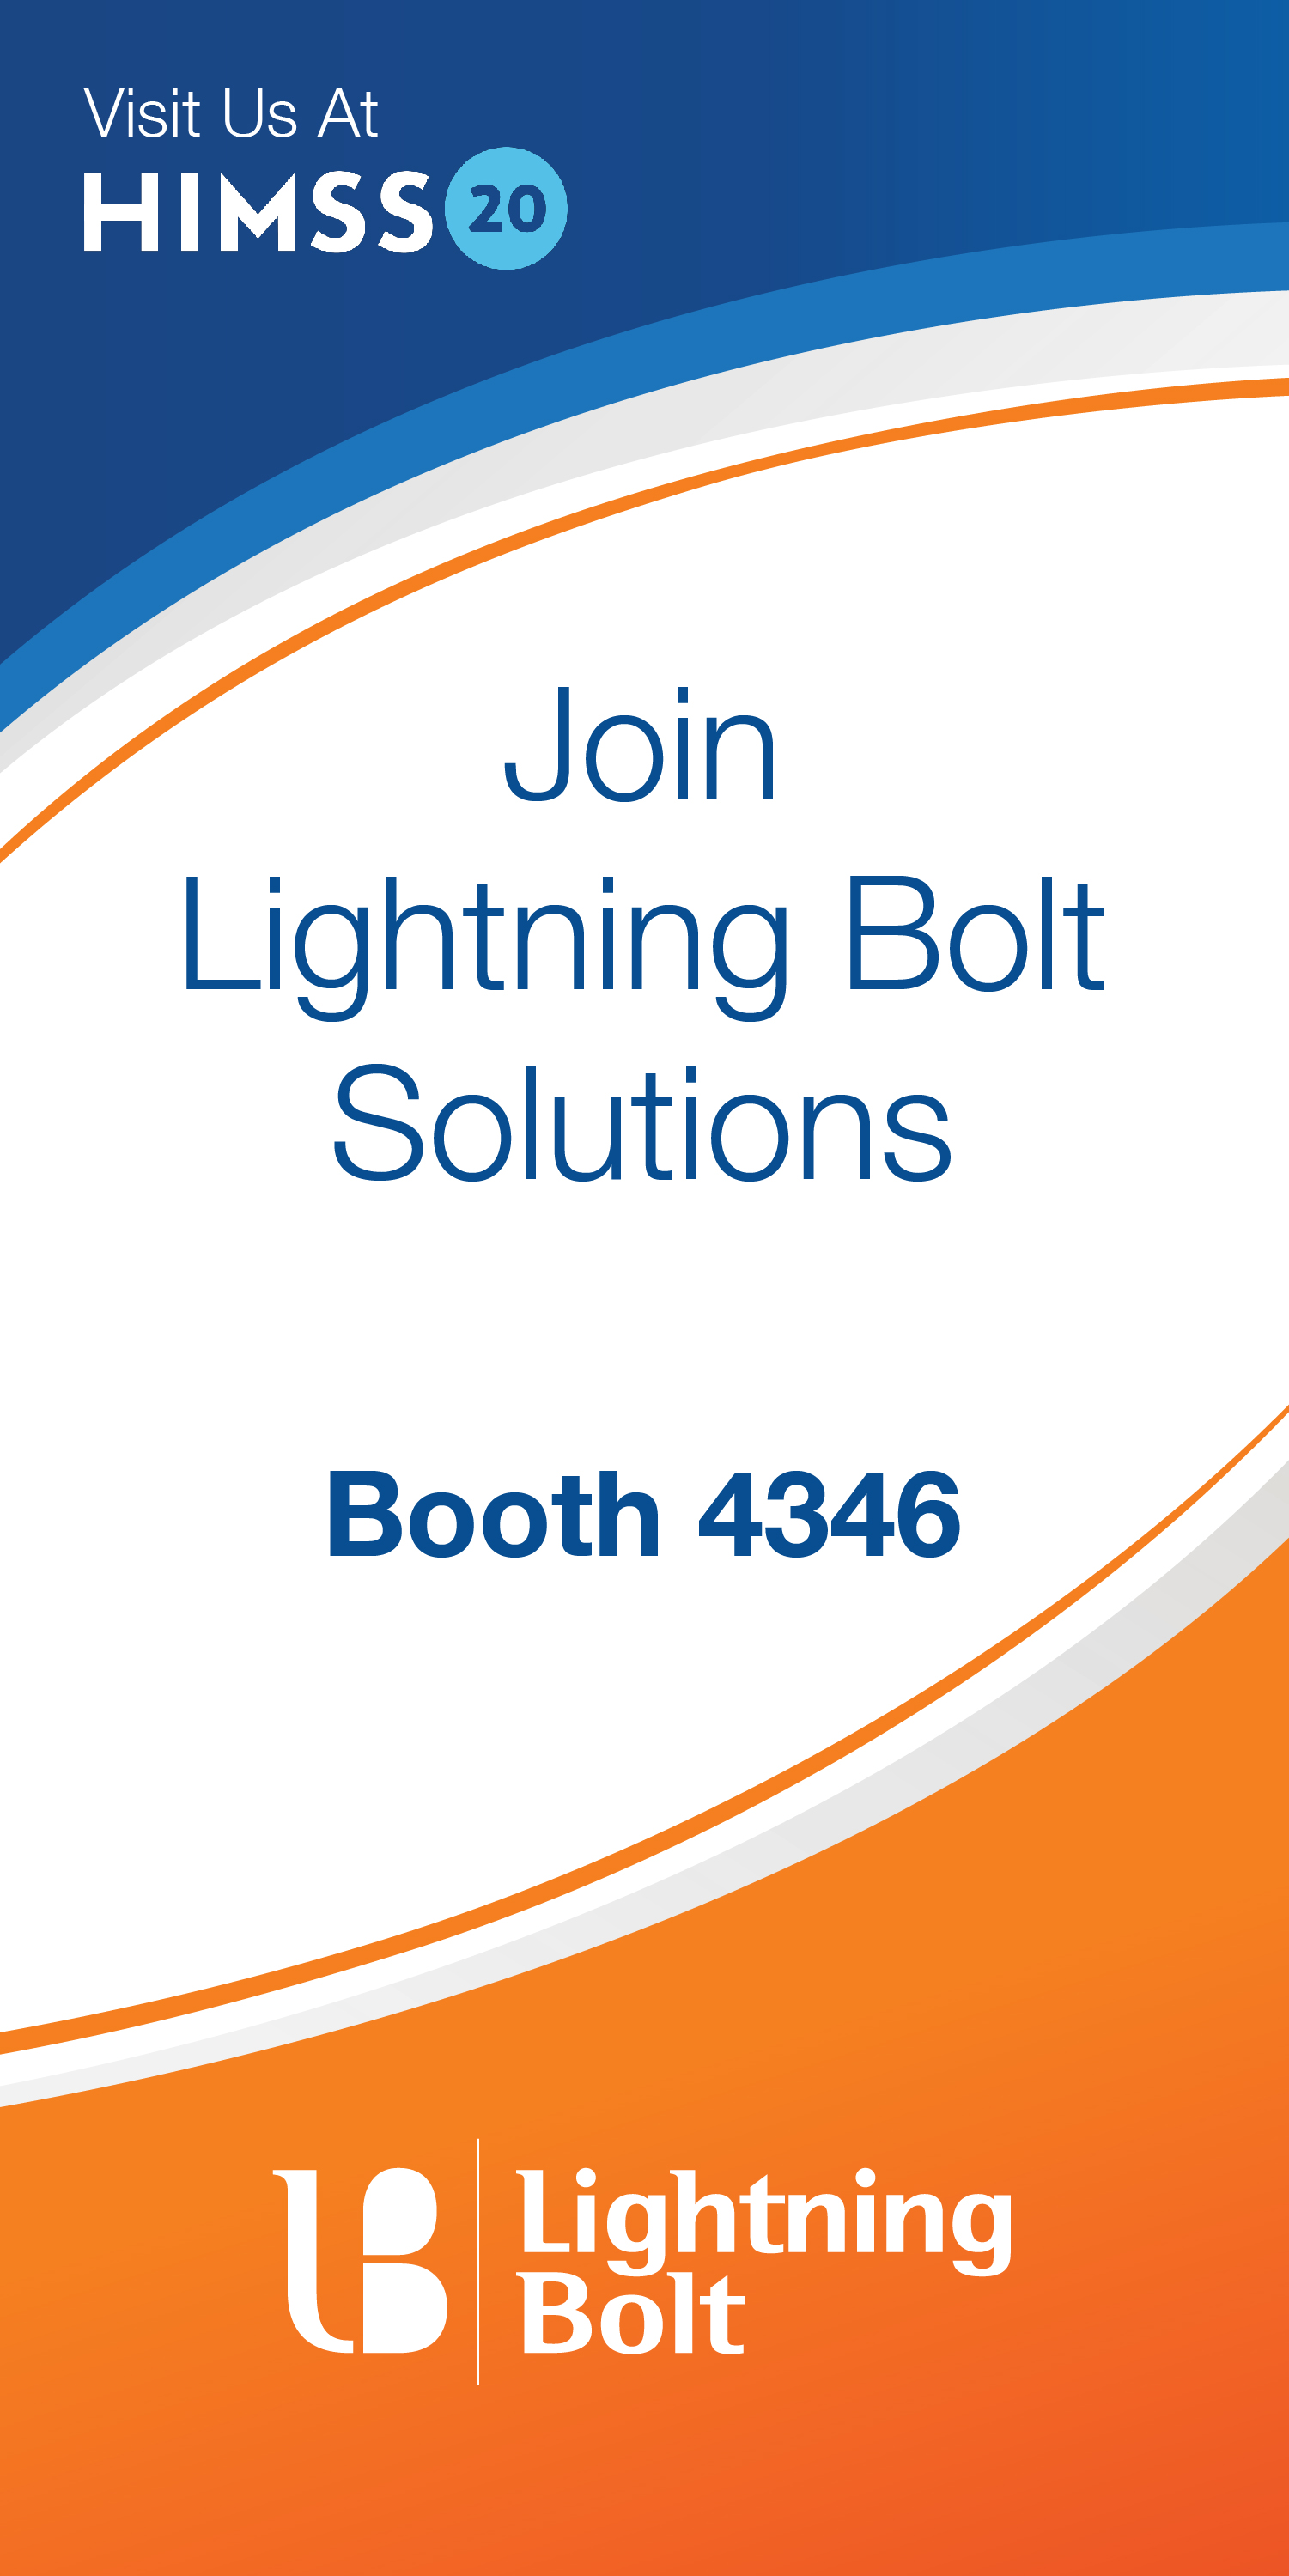 Lightning Bolt will be exhibiting at booth 4346 at HIMSS20.